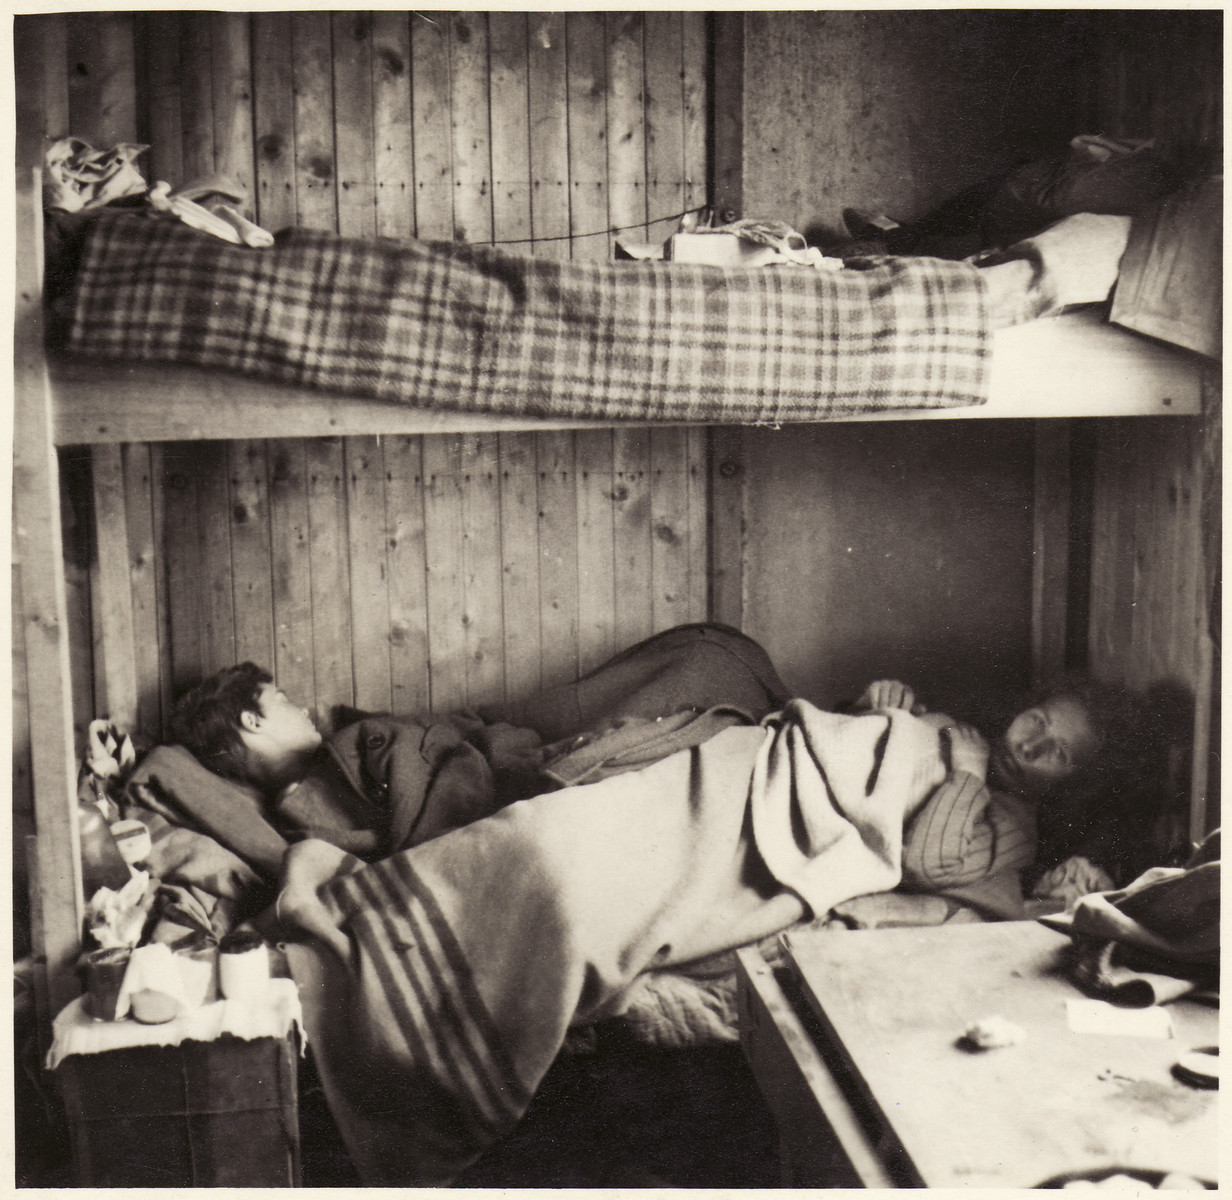 A woman and young boy lie on the bottom bunk inside a barrack at the Bergen-Belsen concentration camp.